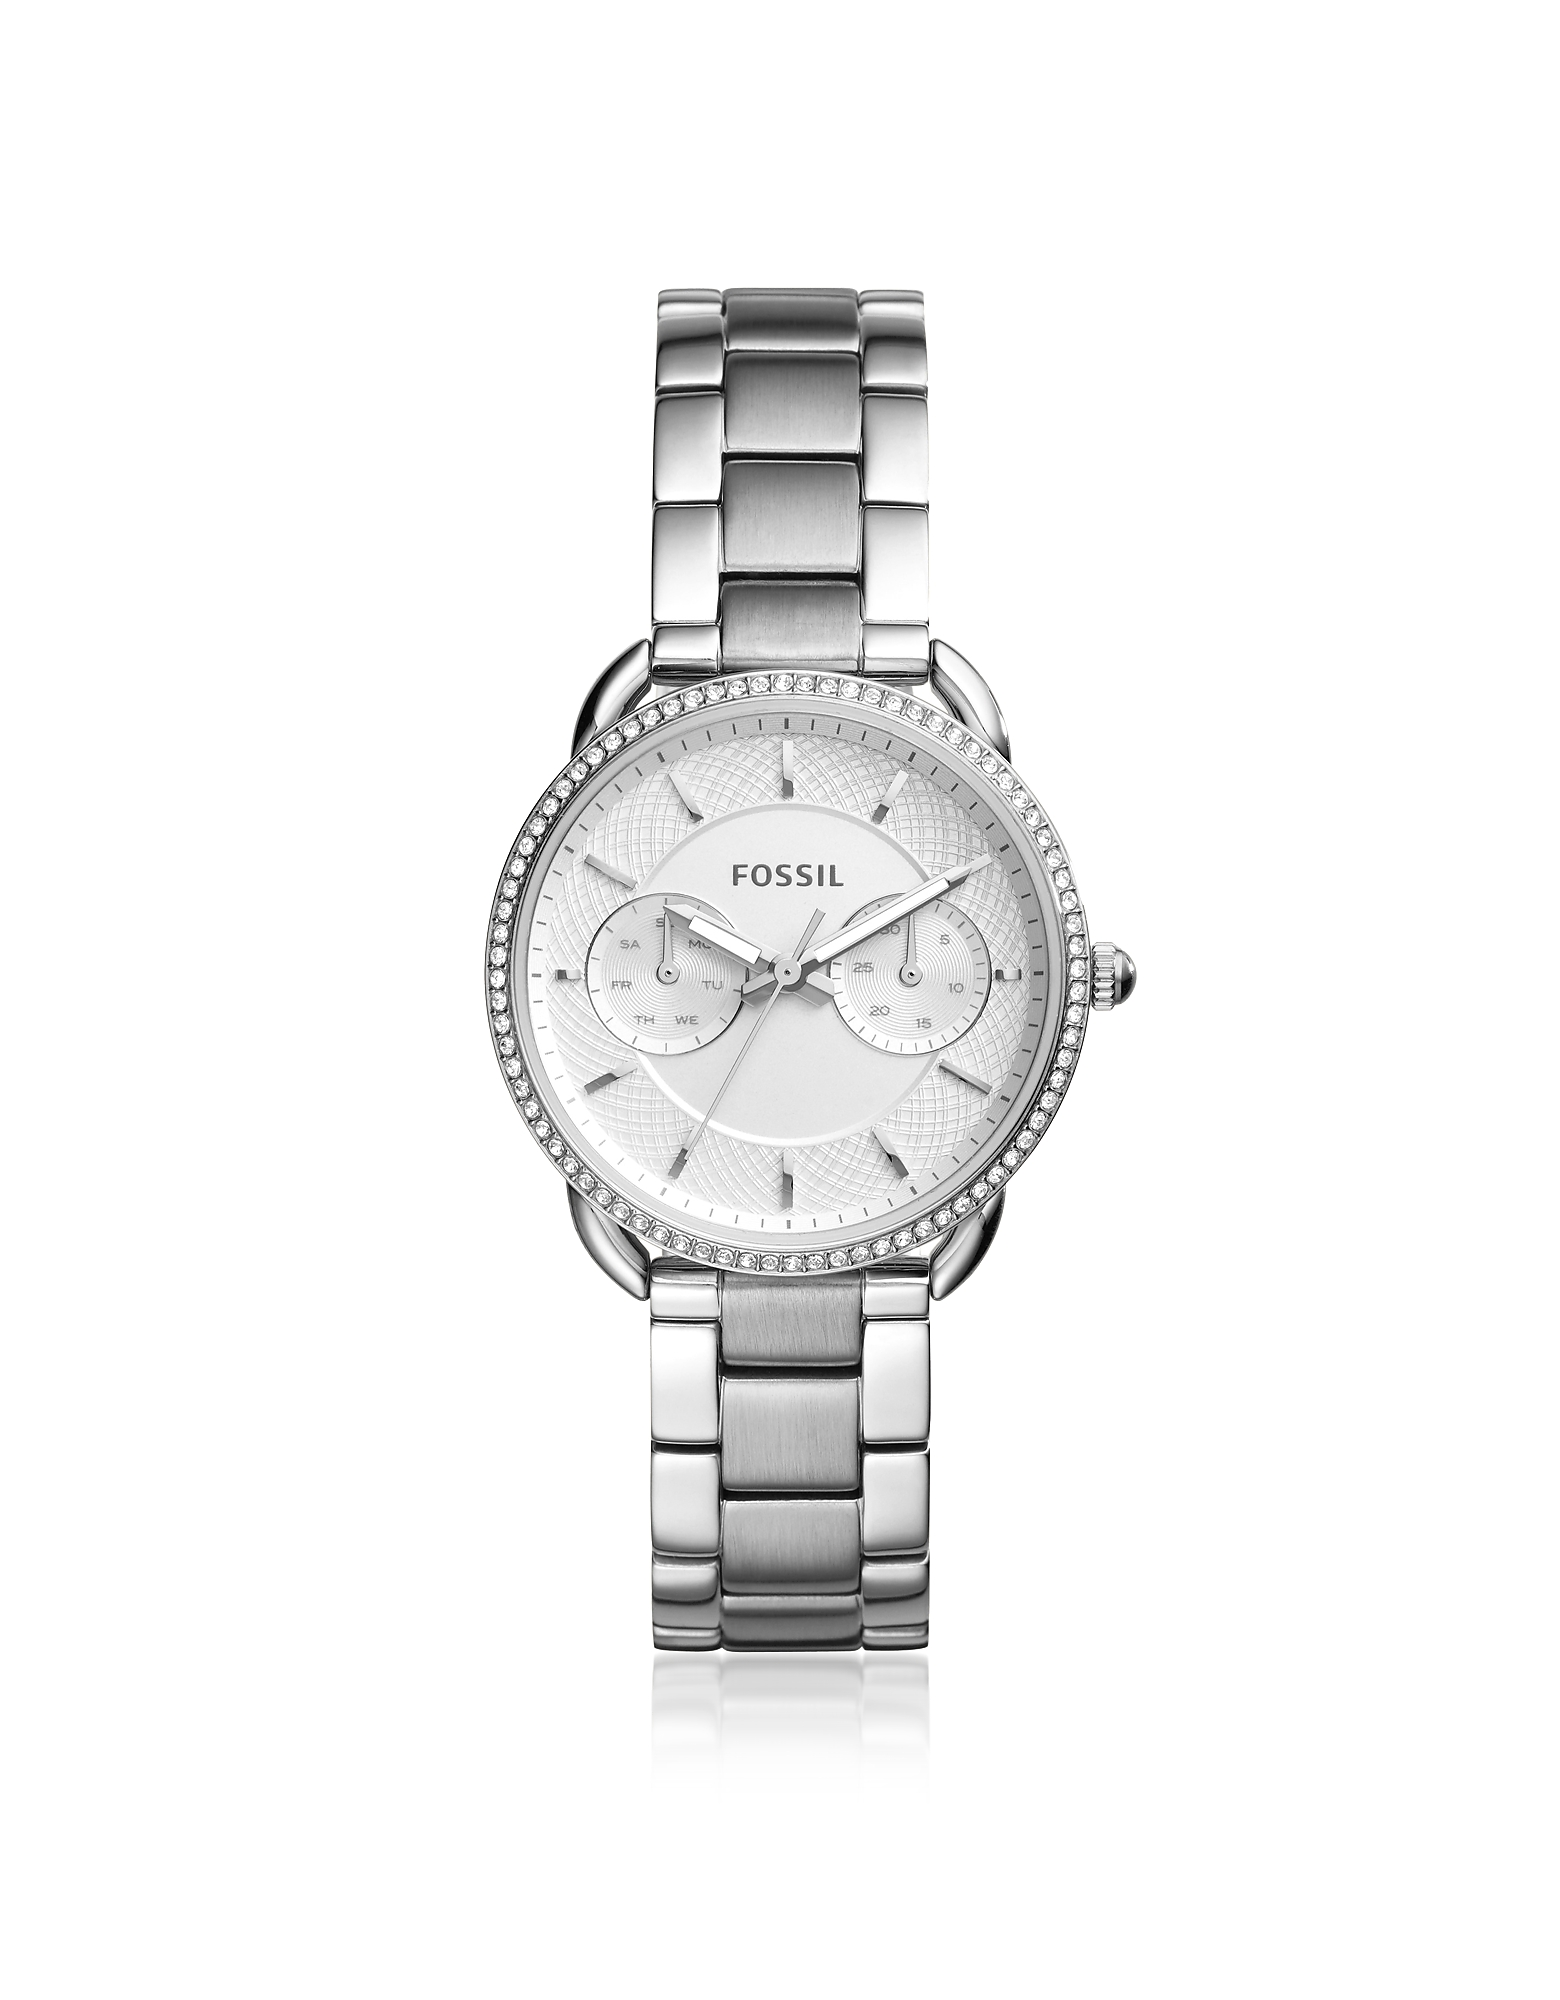 Fossil Women's Watches, Tailor Multifunction Stainless Steel Crystal Watch